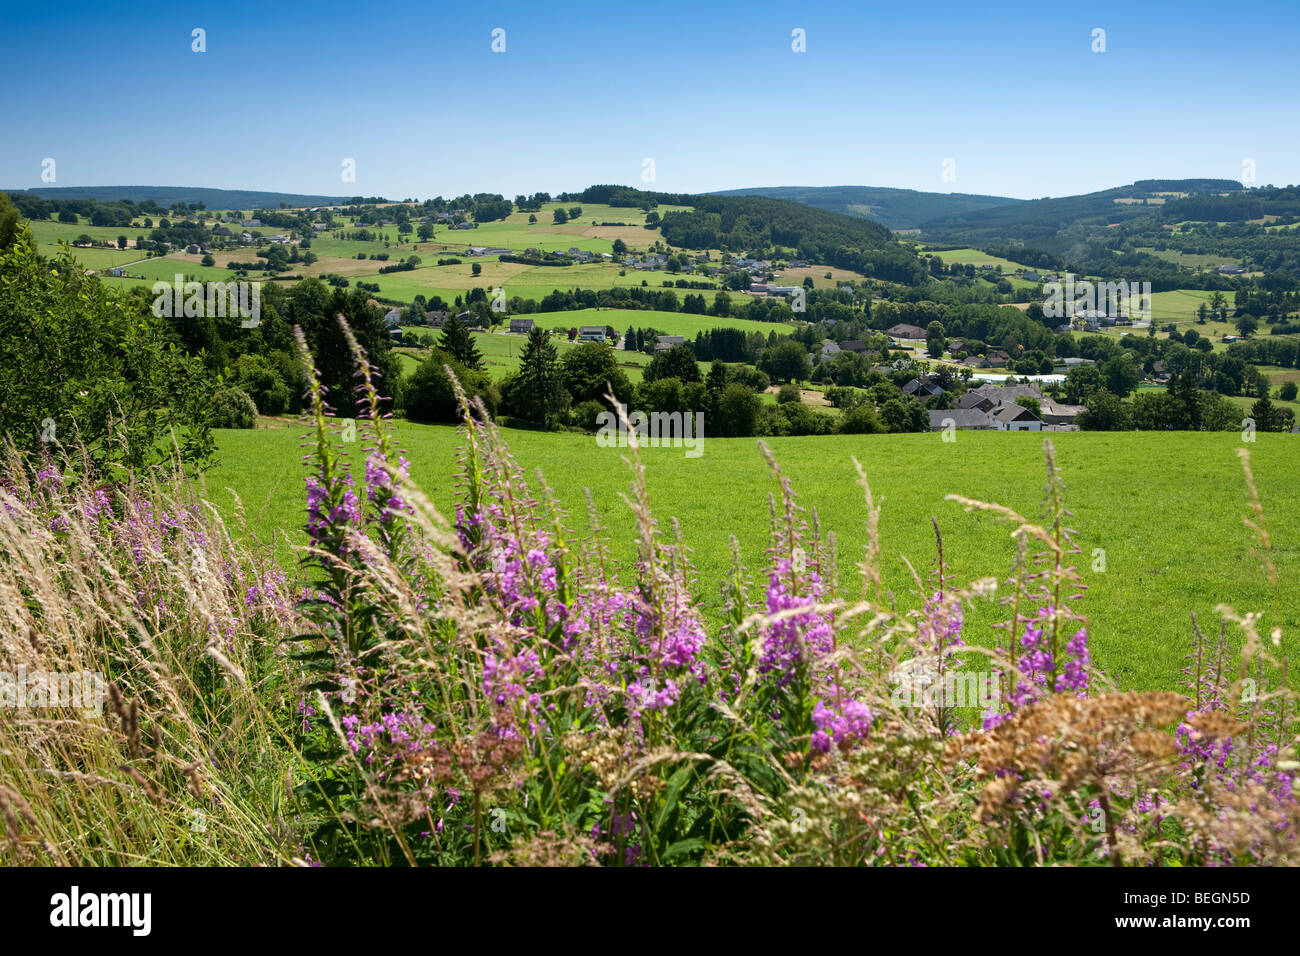 Rolling hills in the Ardennes forest near Malmedy. - Stock Image